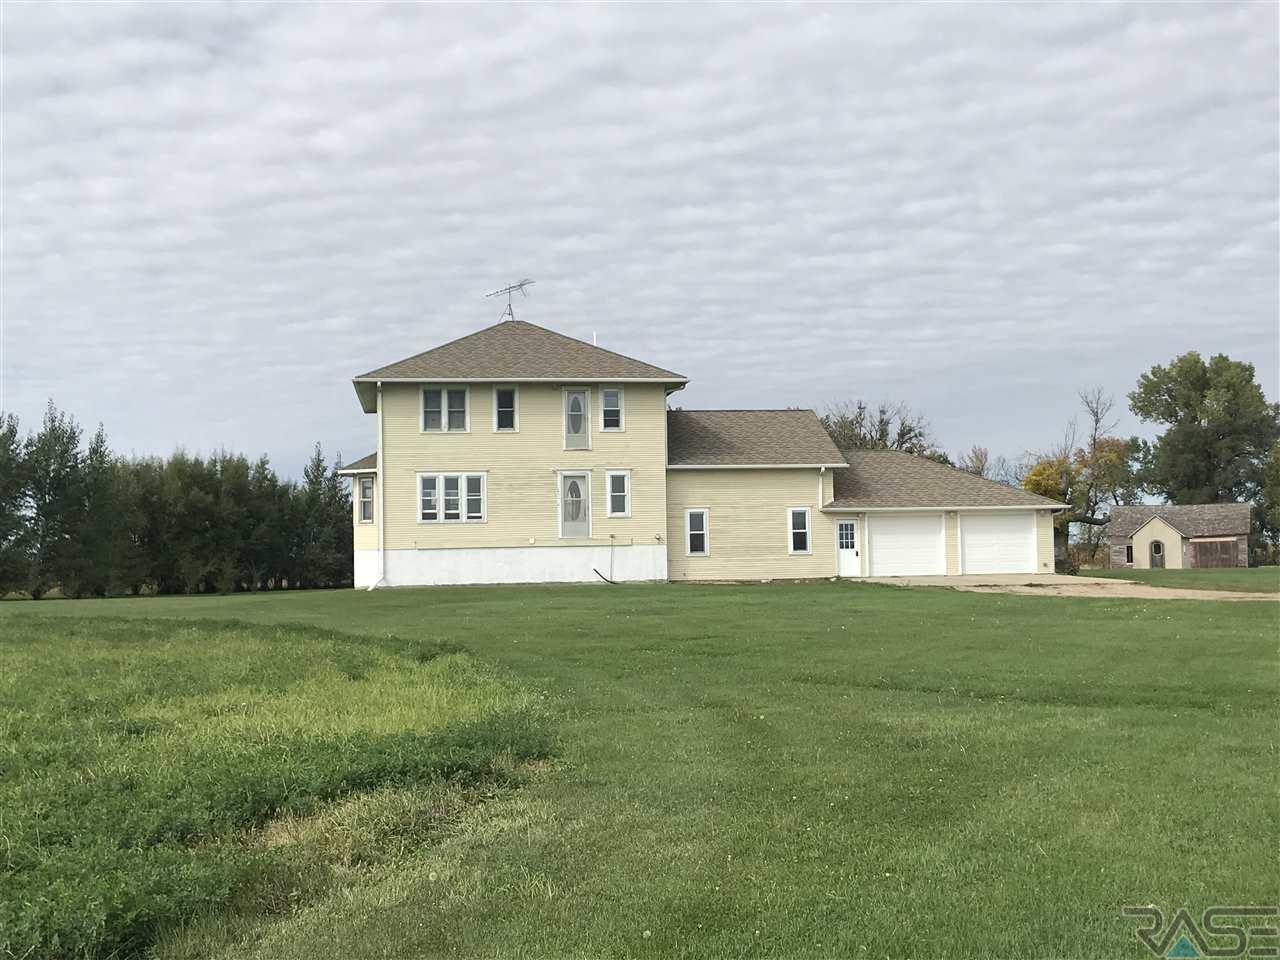 44140 SD Hwy 44, Marion, SD 57043